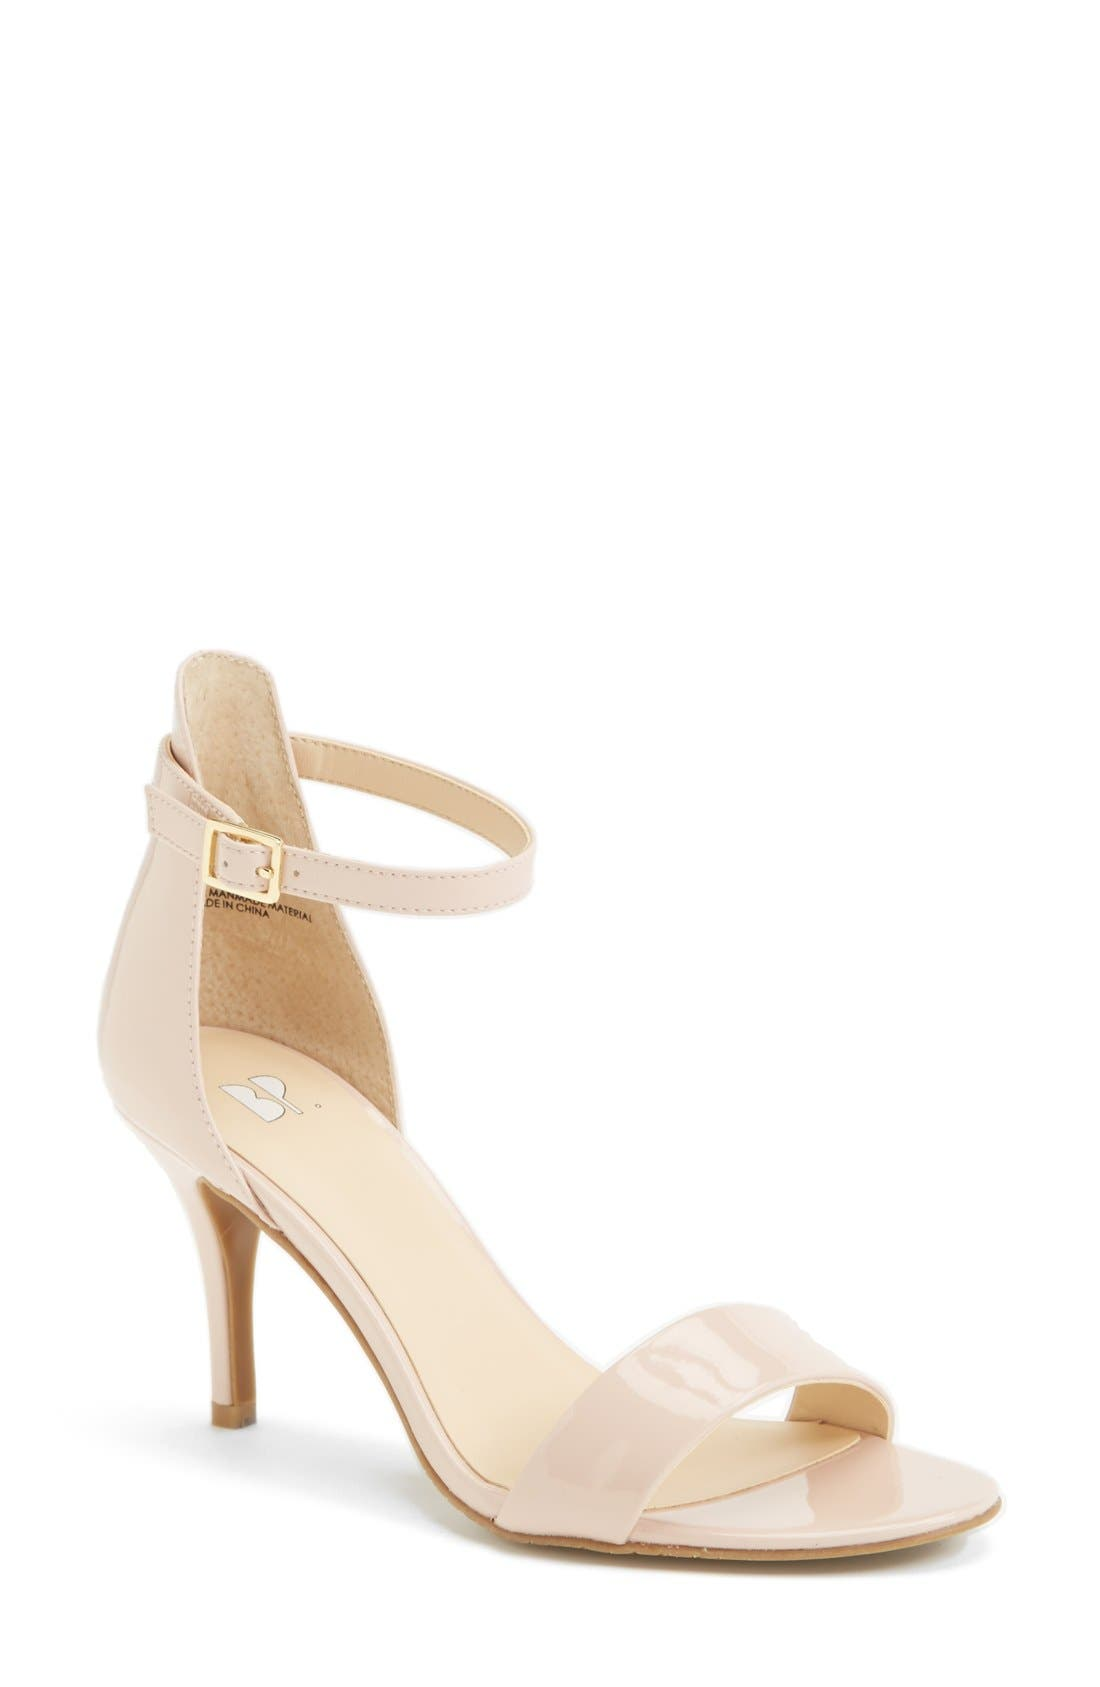 'Luminate' Open Toe Dress Sandal,                             Main thumbnail 39, color,